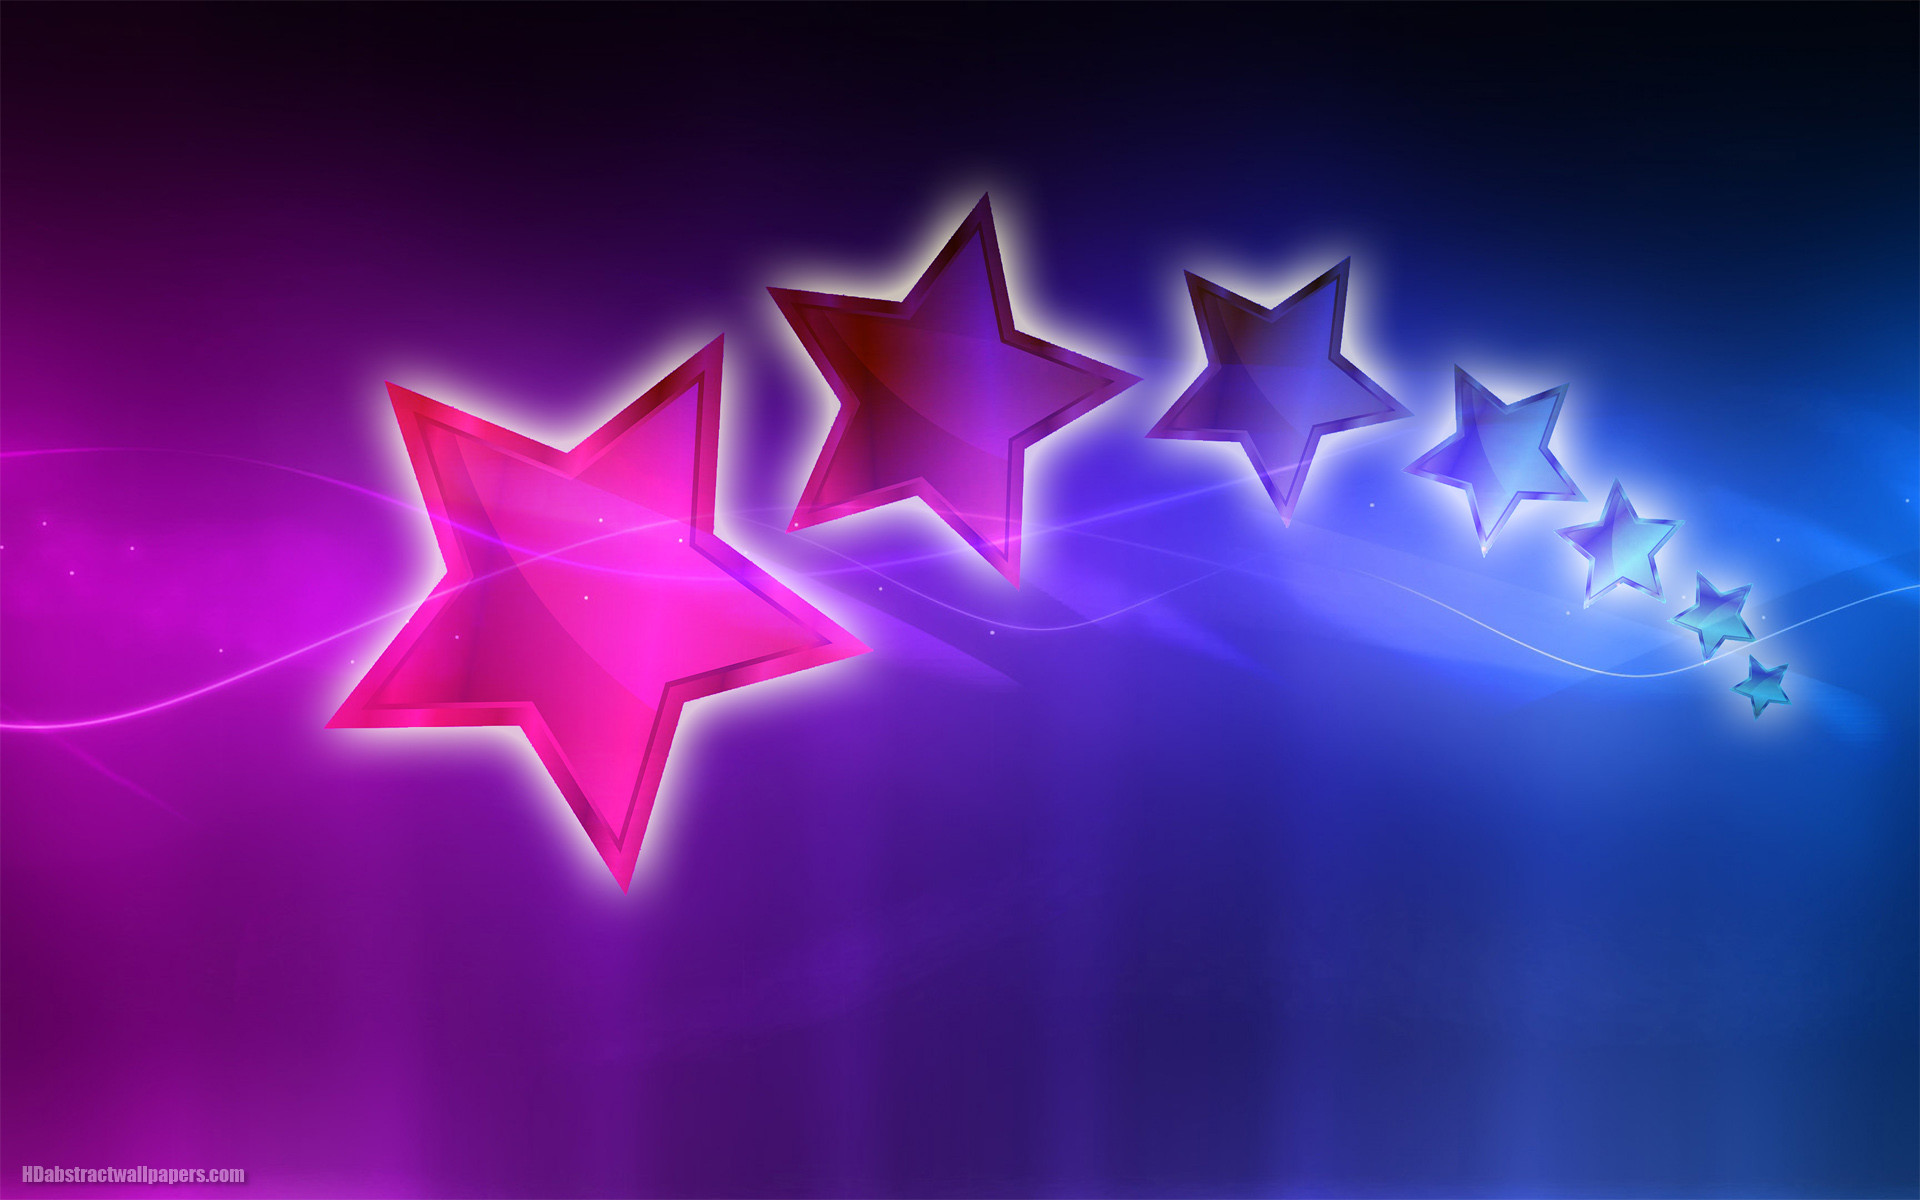 Beautiful purple, pink and blue abstract wallpaper with stars